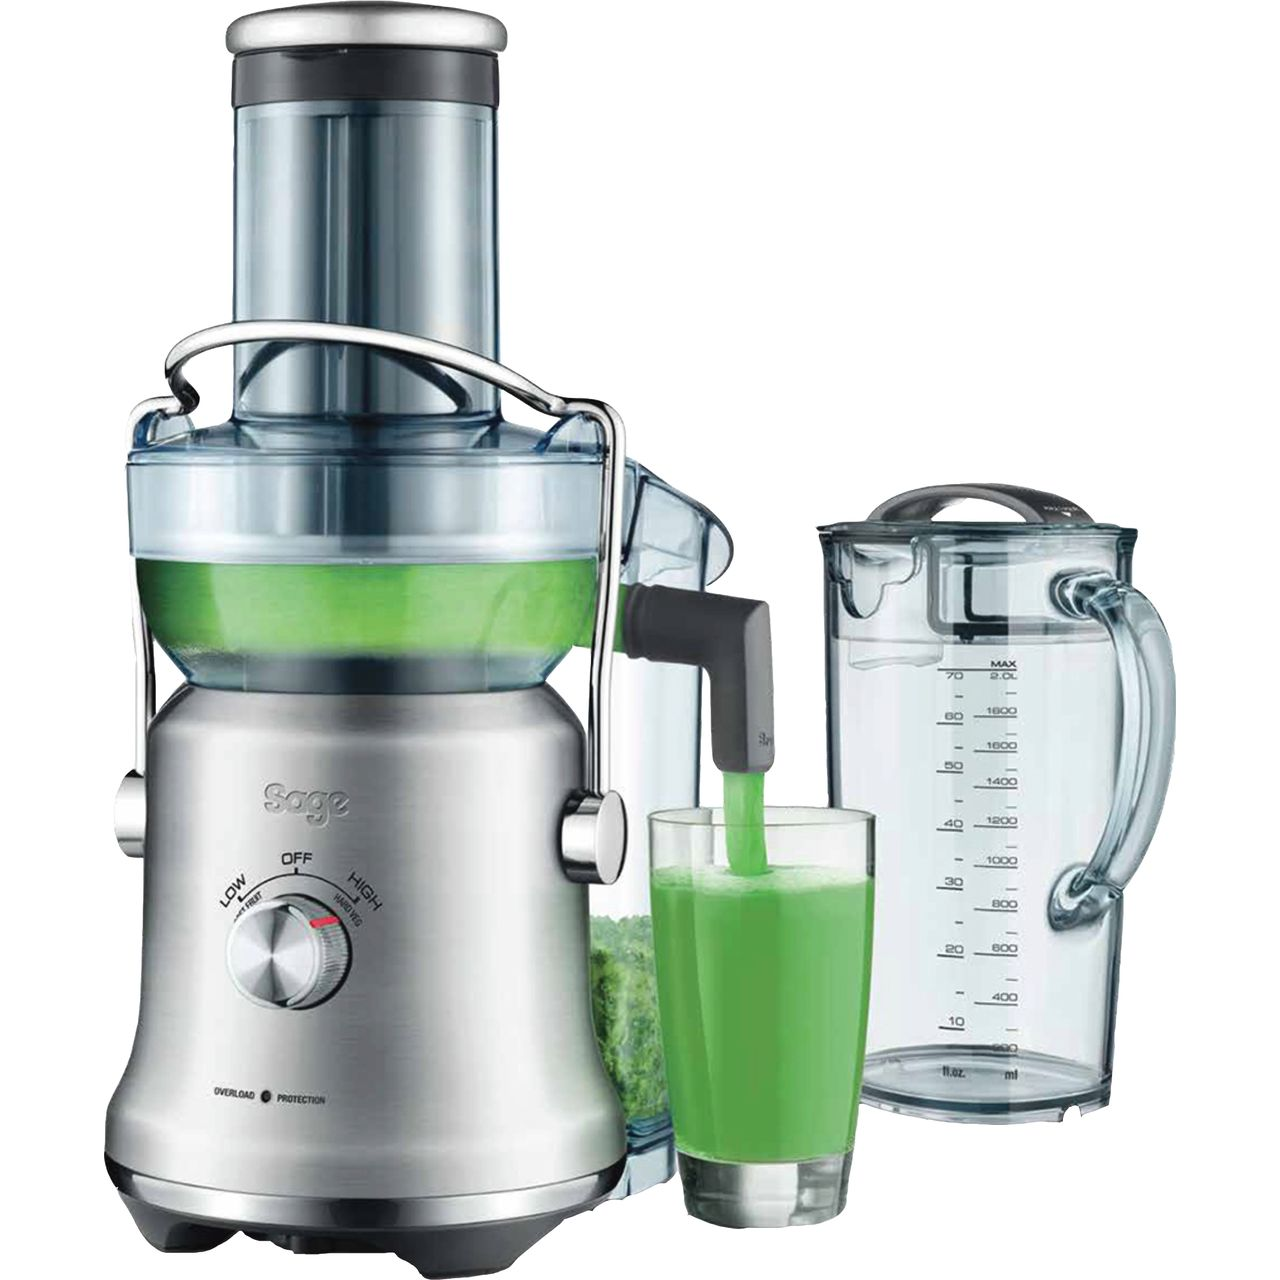 Sage The Nutri Juicer XL SJE830BSS Centrifugal Juicer Brushed Stainless Steel